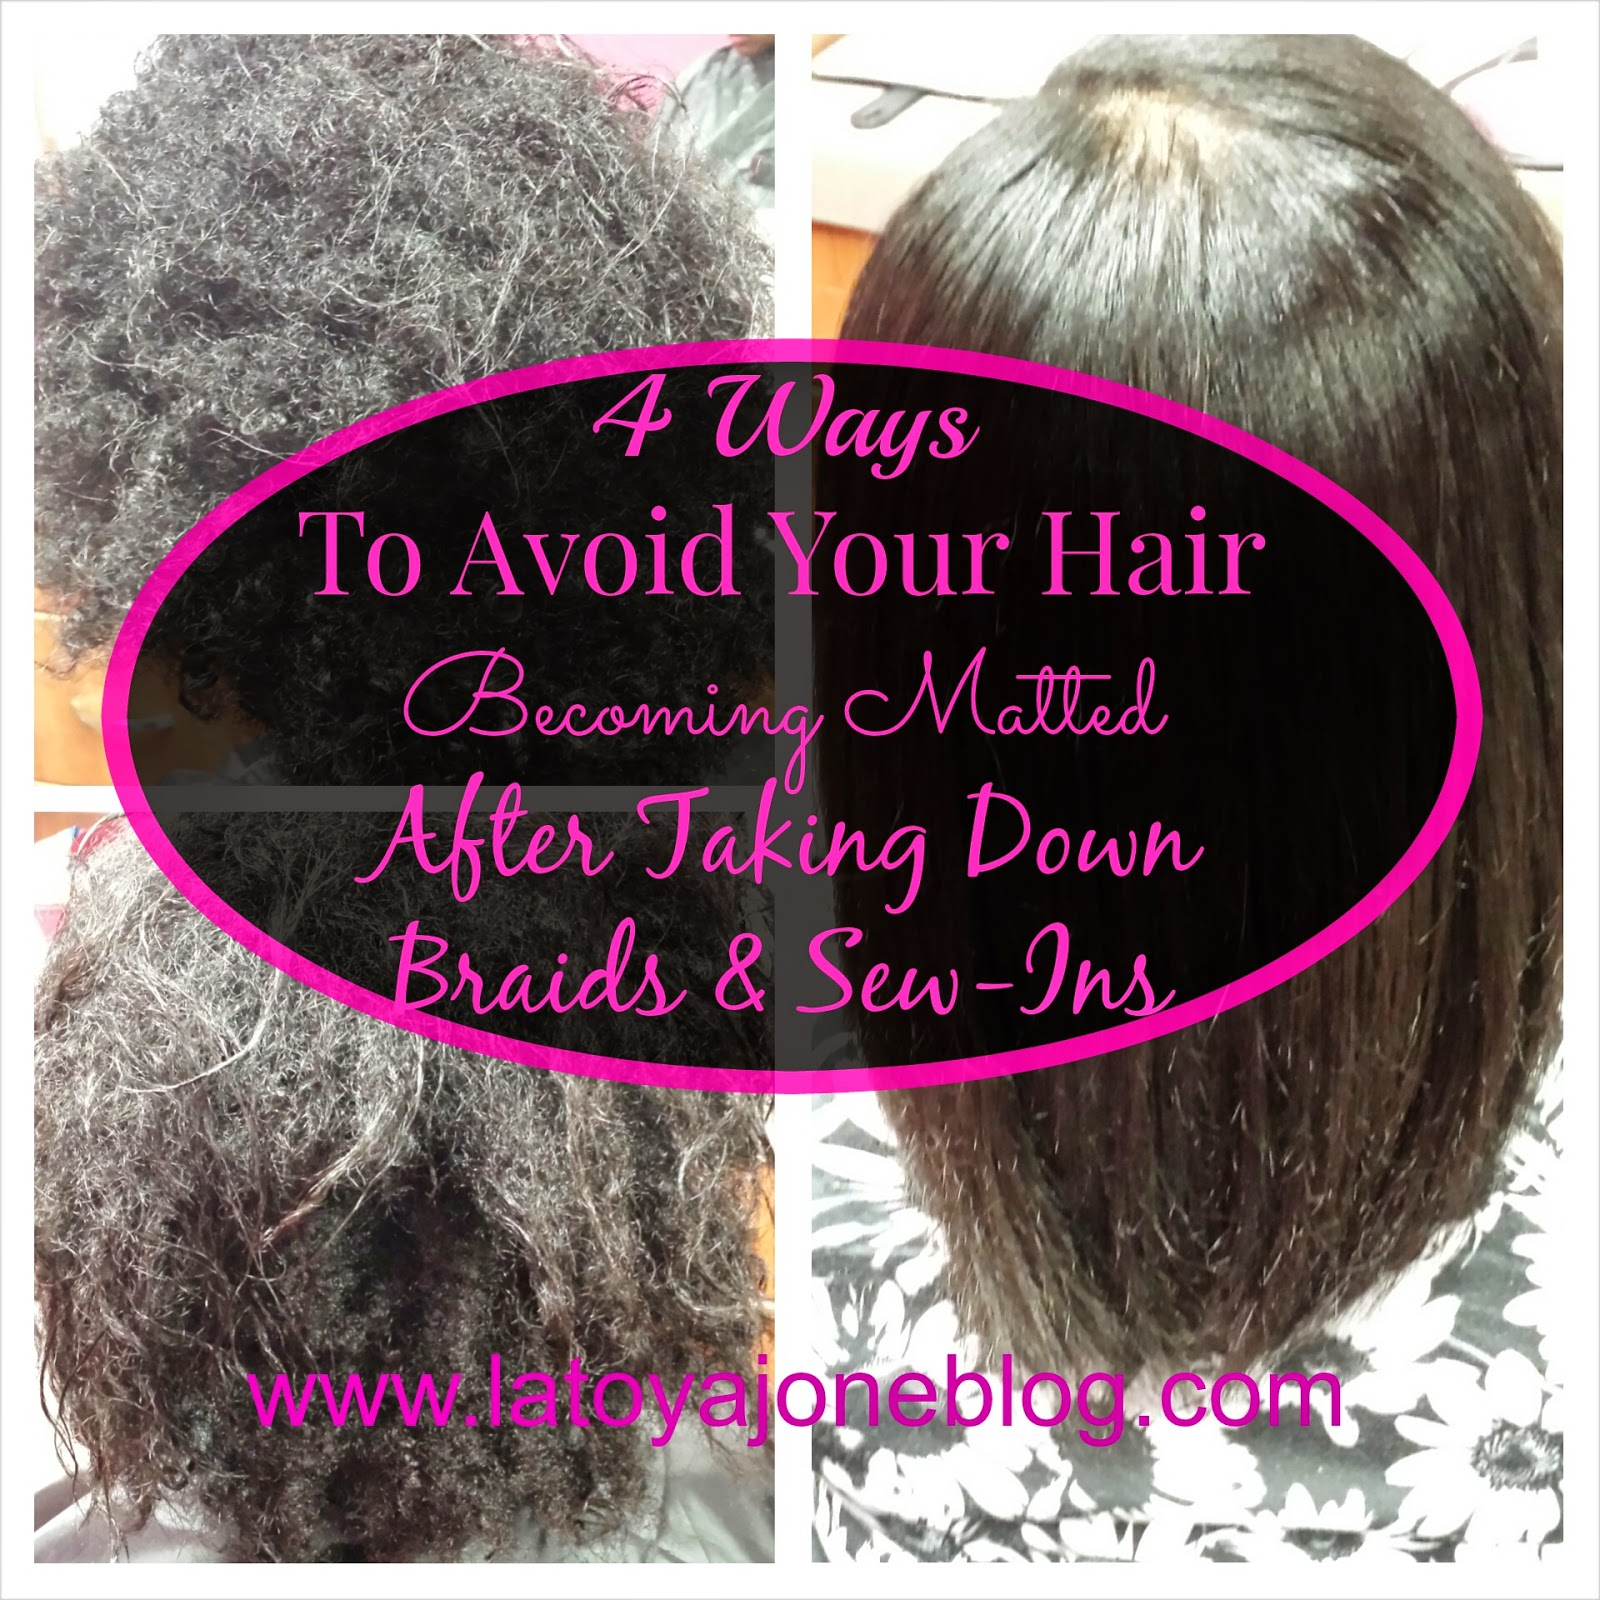 4 Ways To Avoid Your Hair Becoming Matted After Taking Down Braids